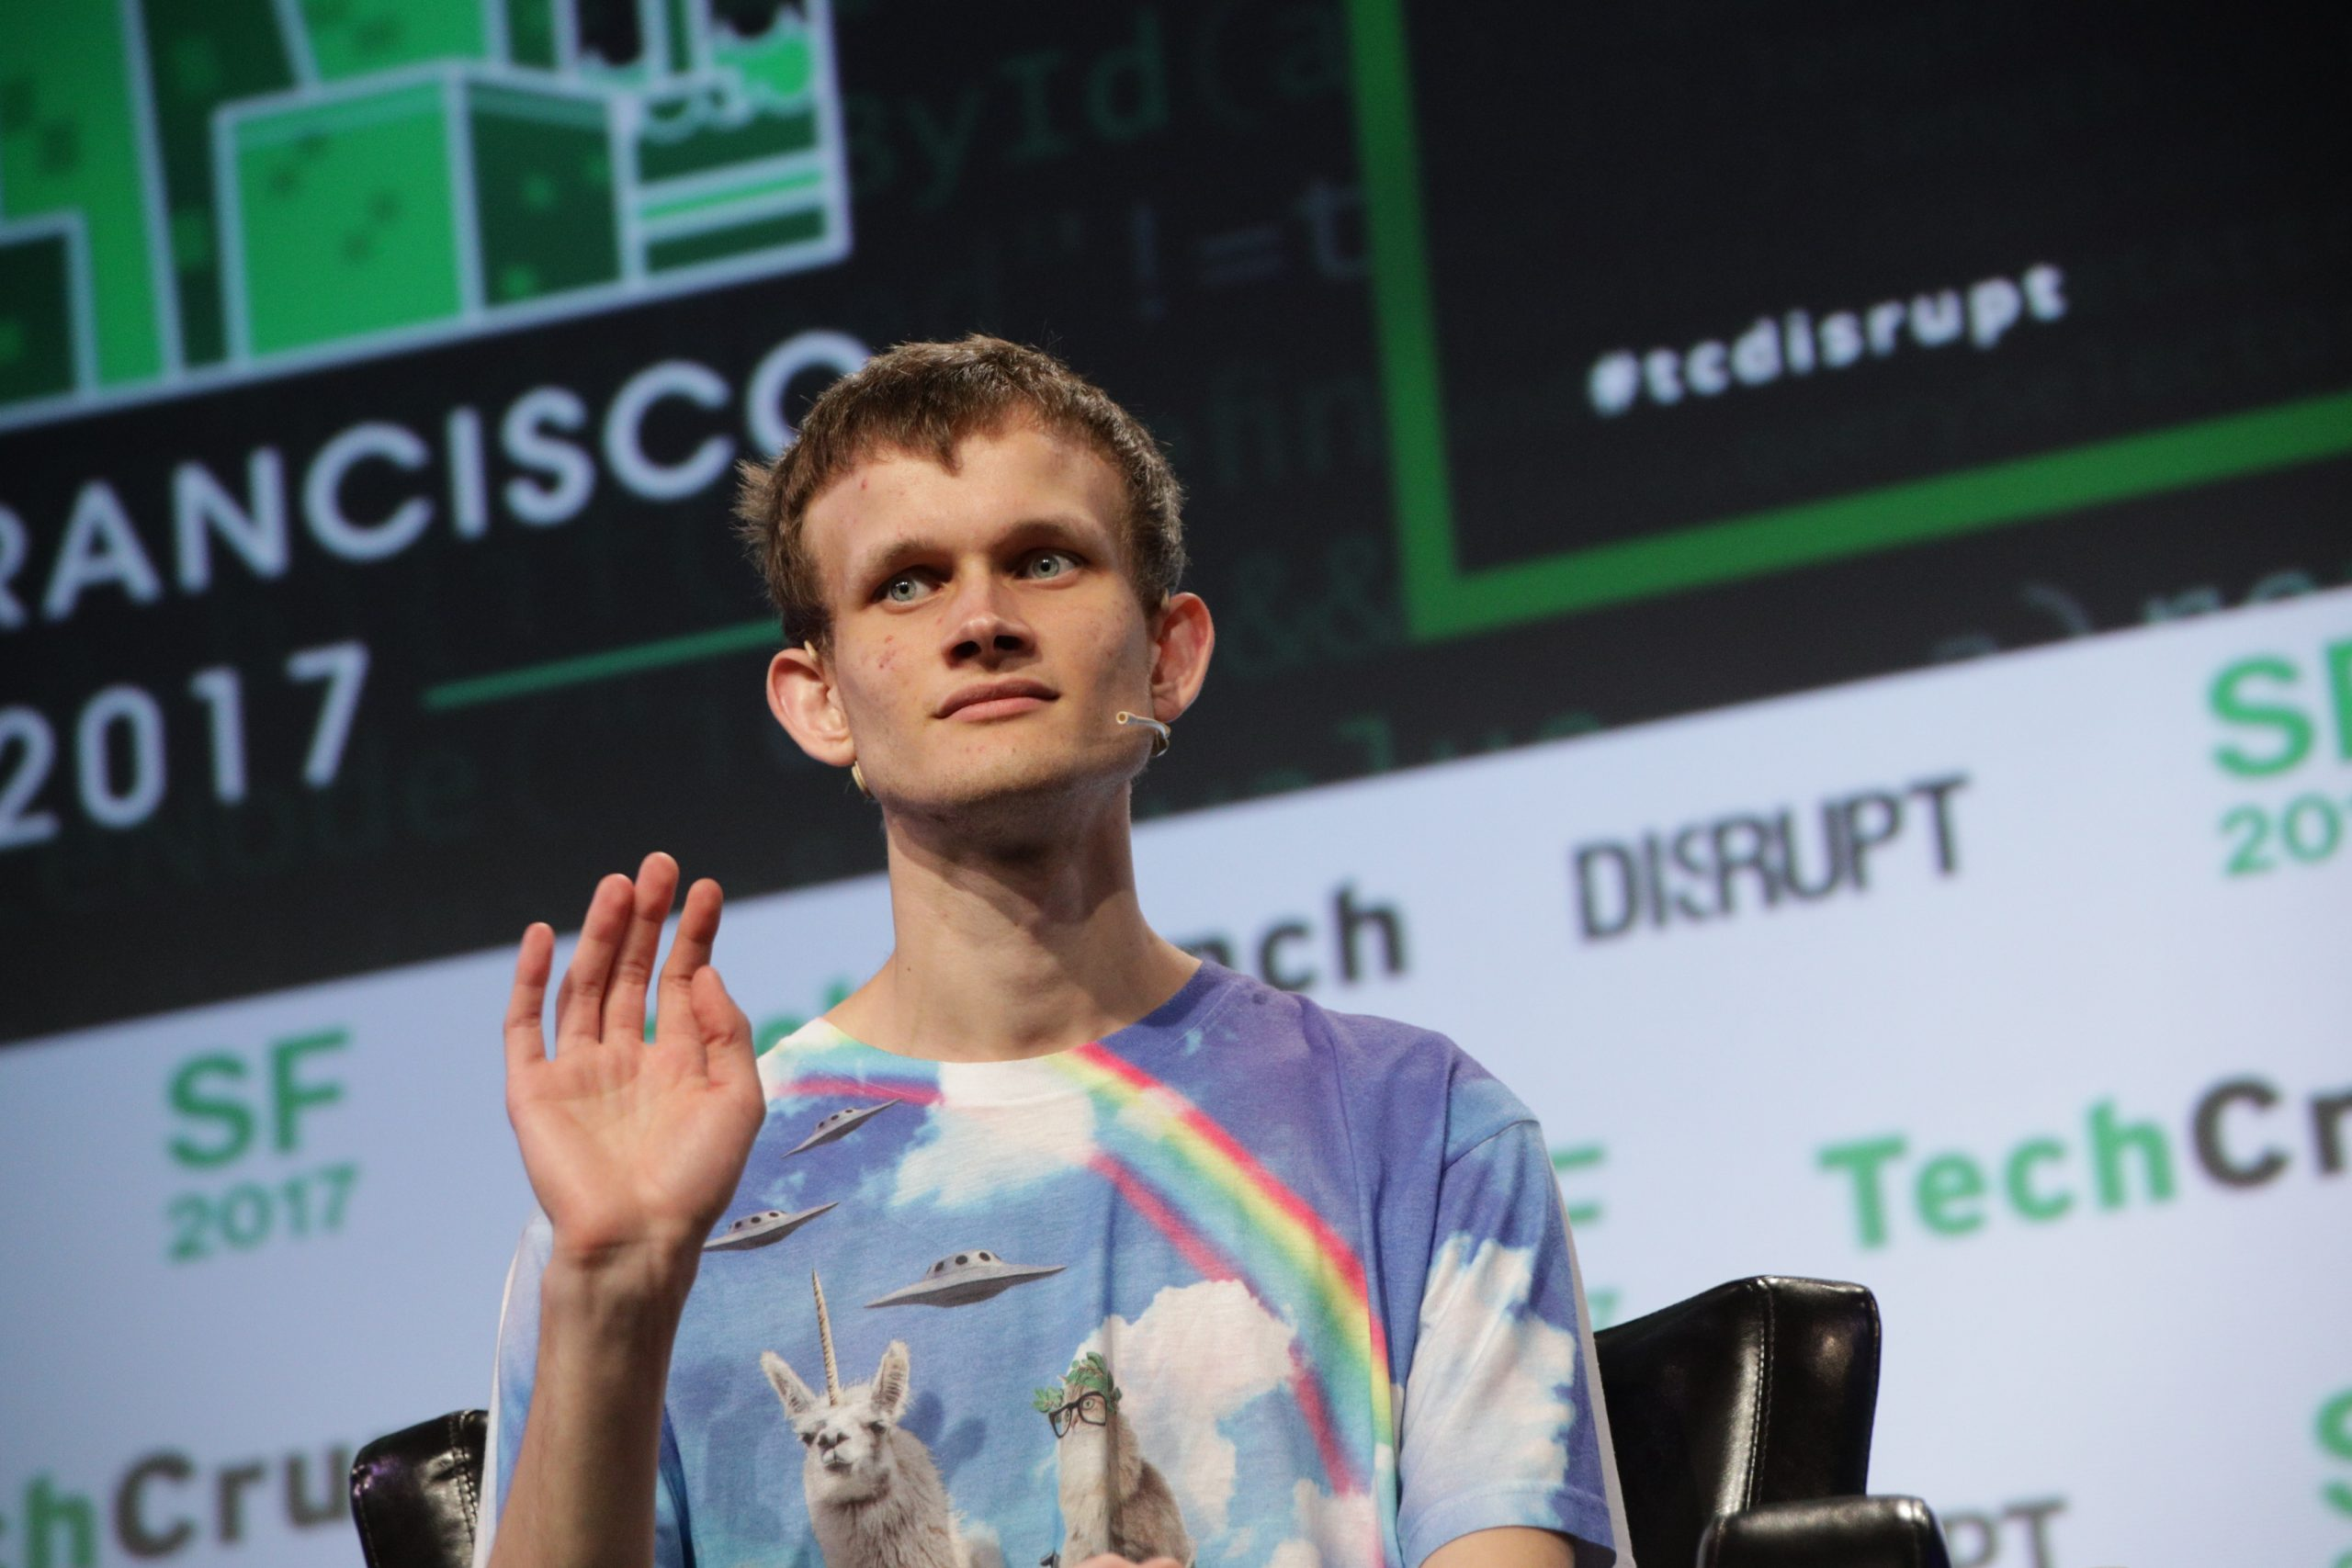 Ethereum creator officially becomes a billionaire